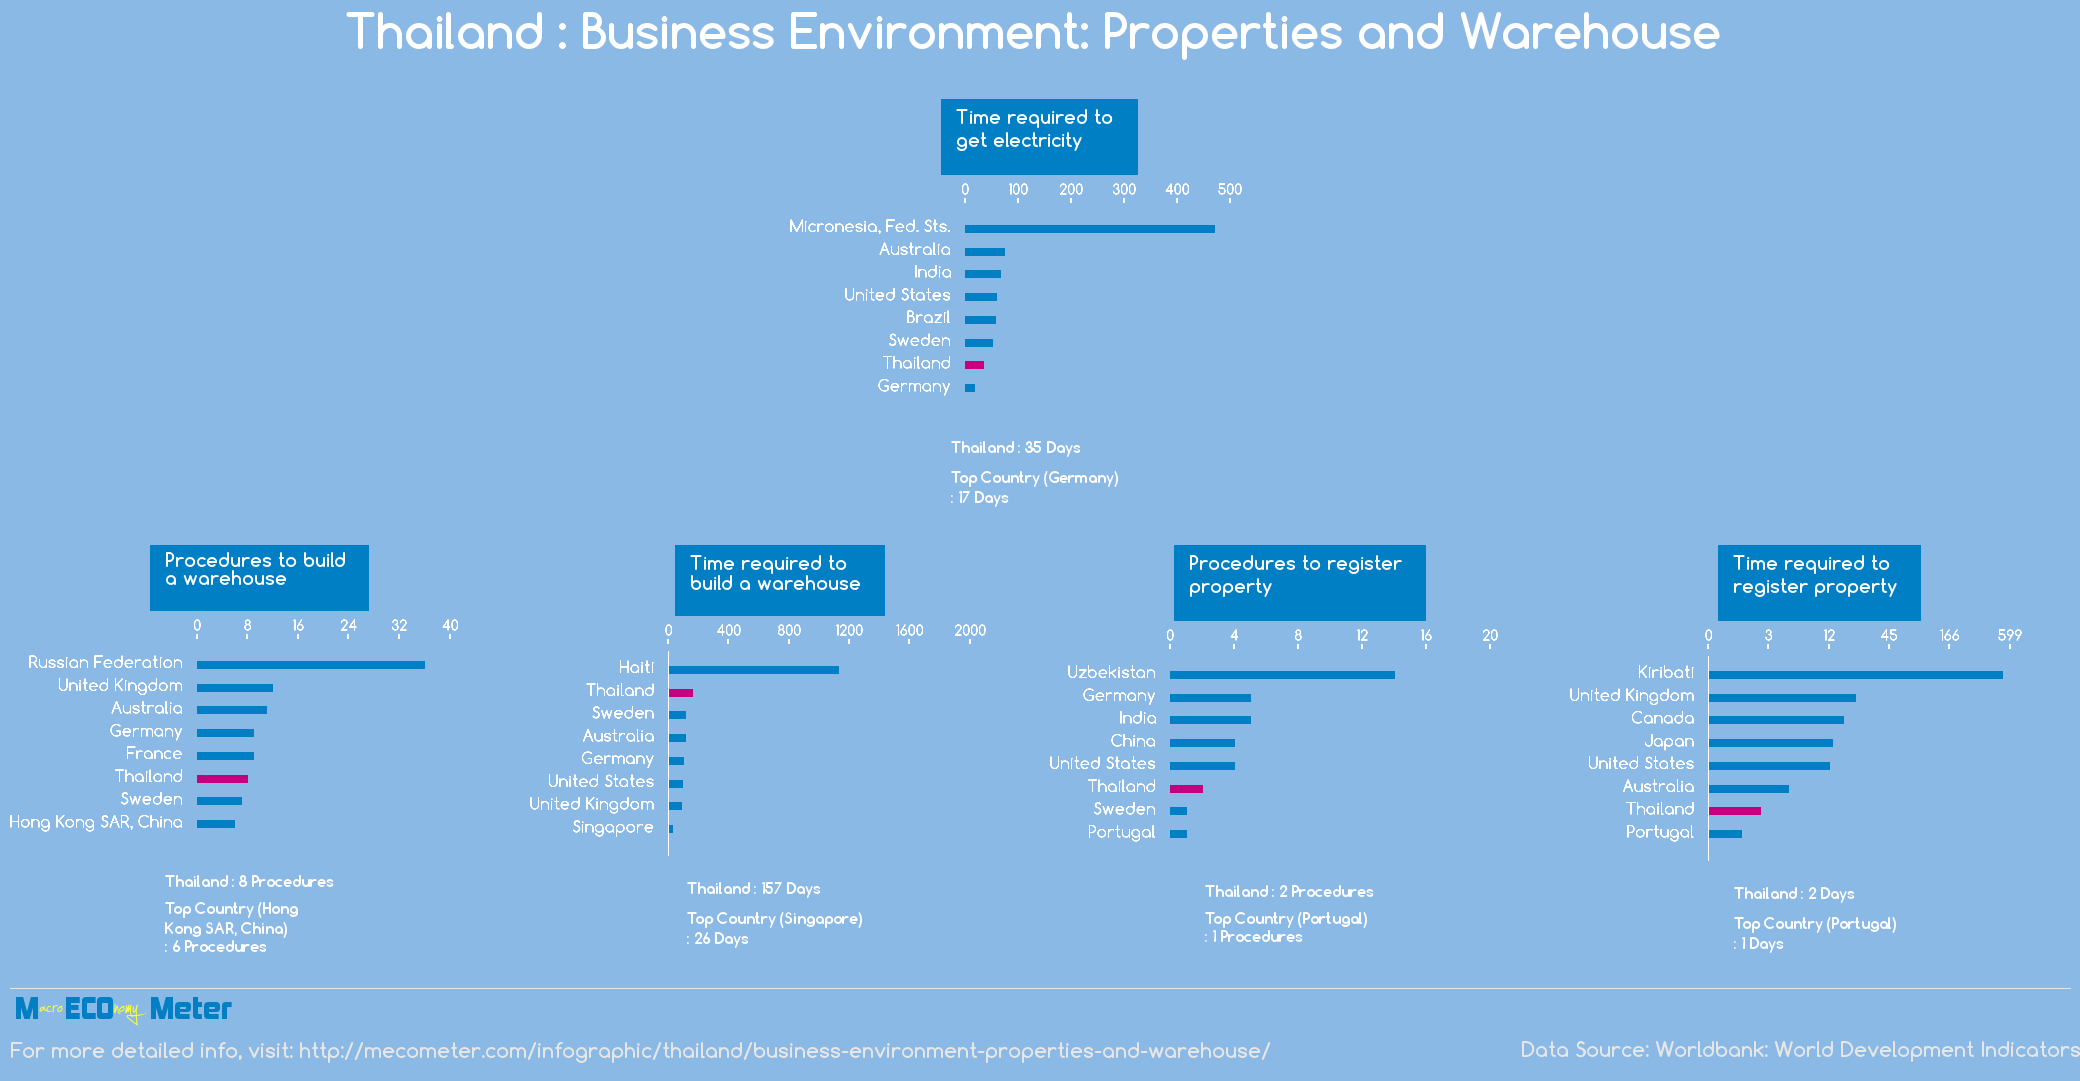 Thailand : Business Environment: Properties and Warehouse